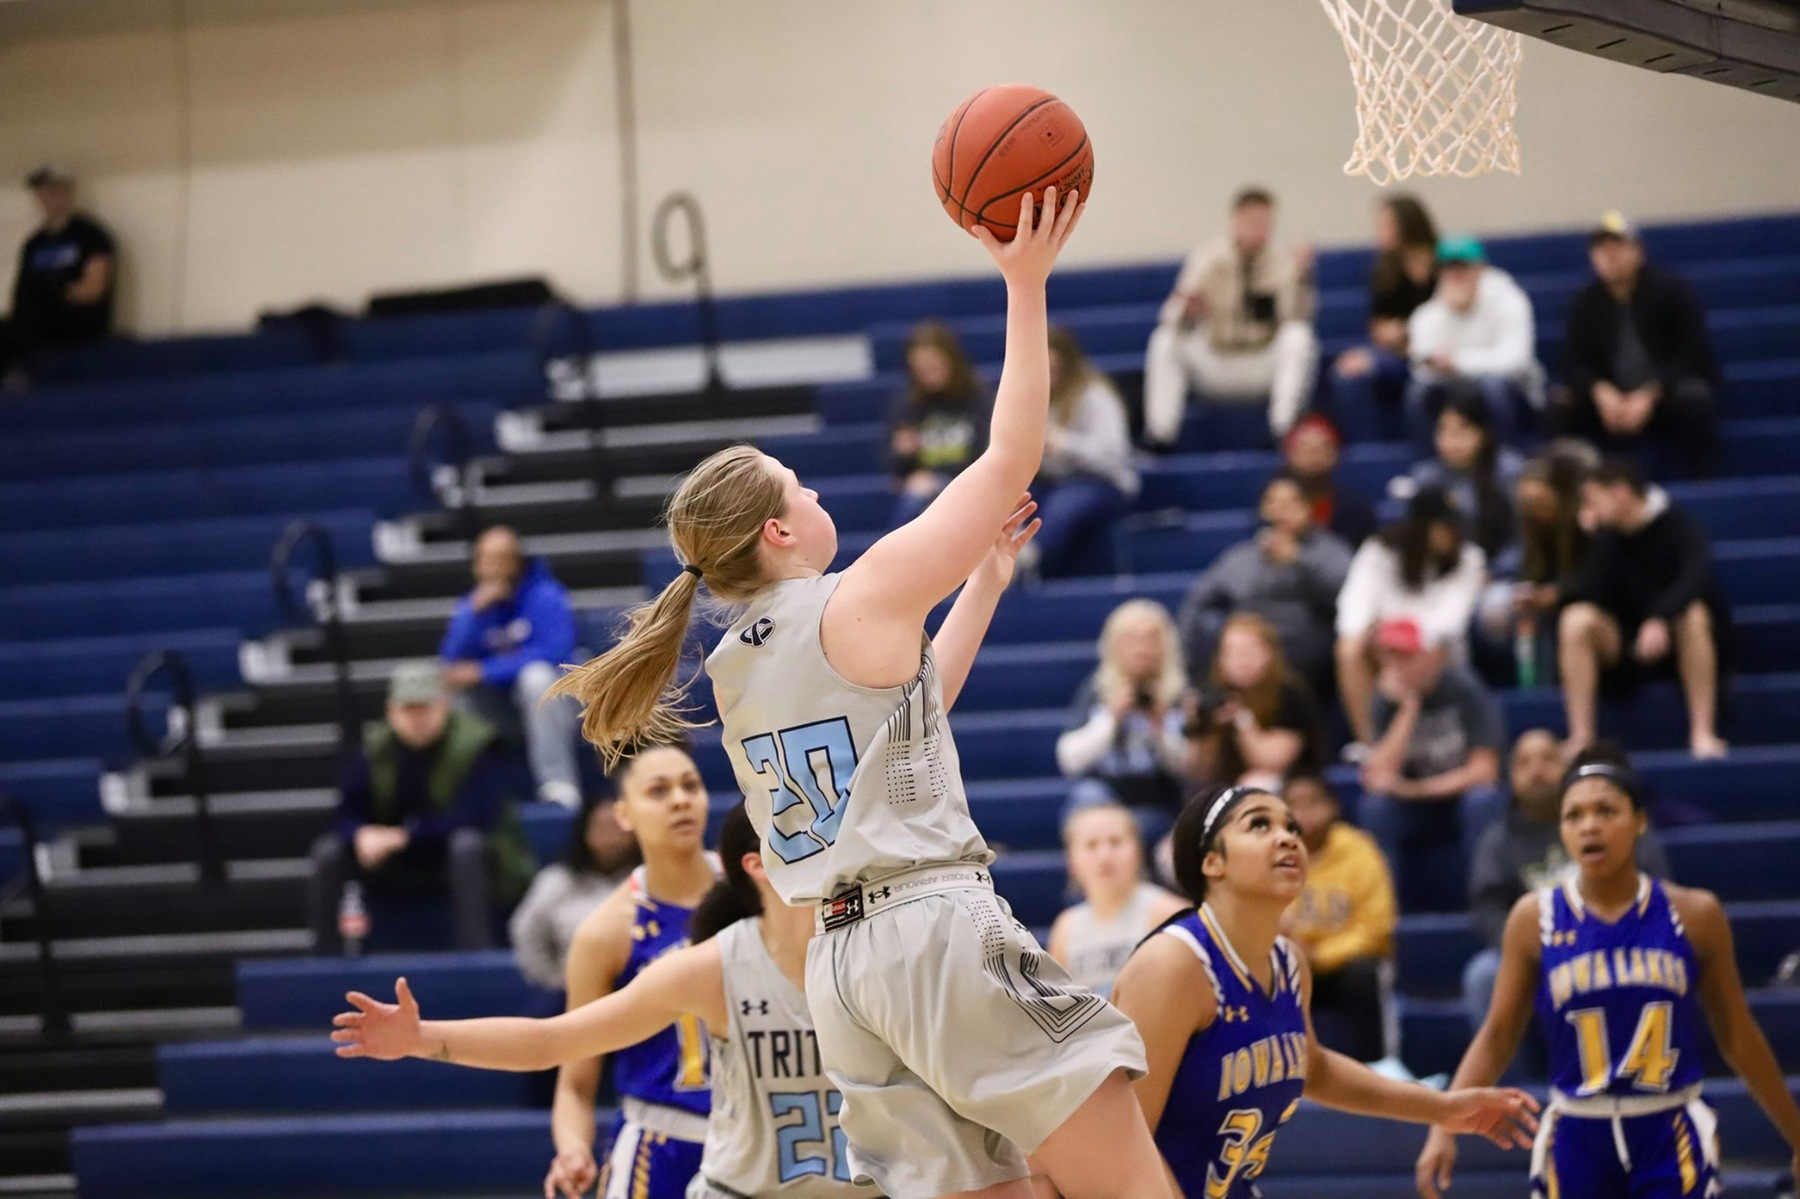 Engbrecht leads Tritons on the road